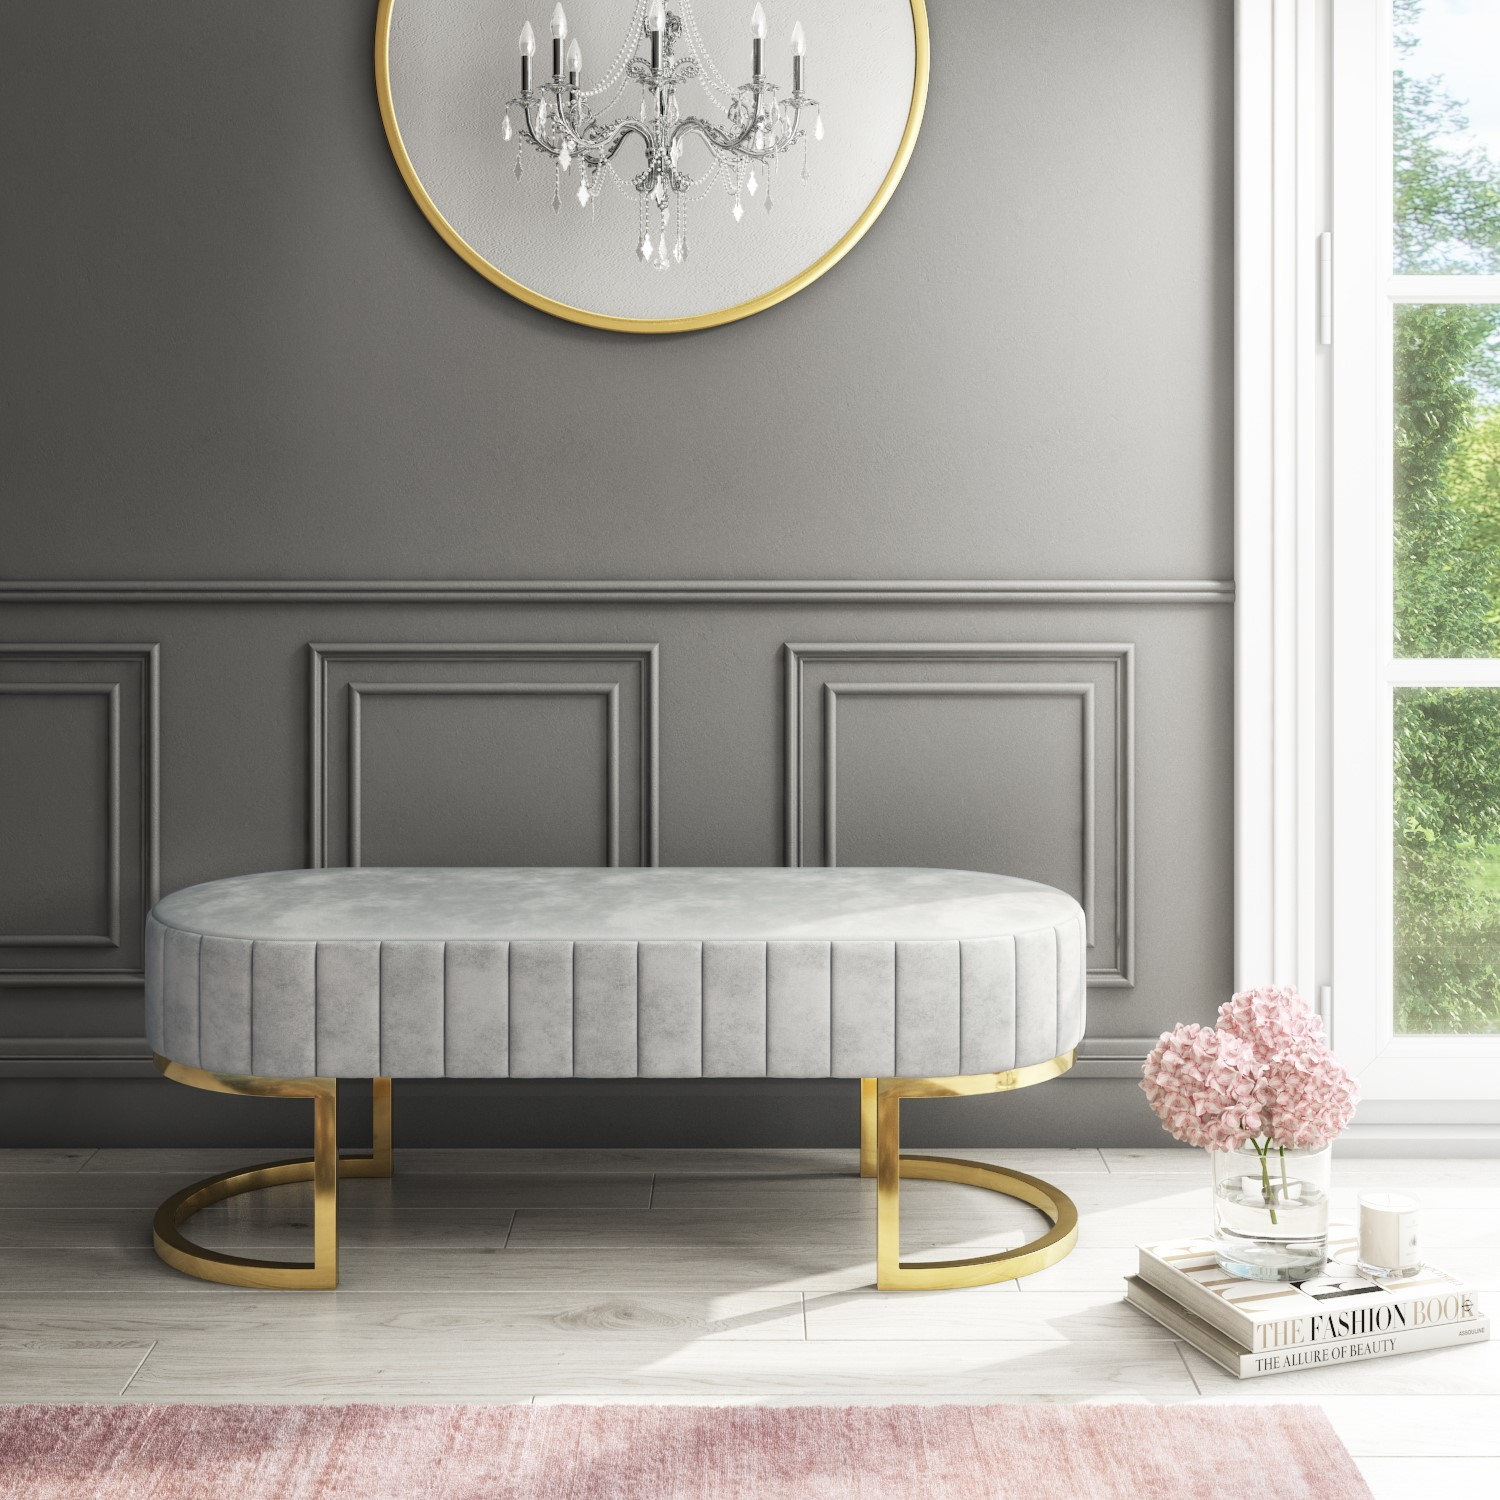 Grade A1 Safina Velvet Bench In Silver Grey With Gold Legs Furniture123